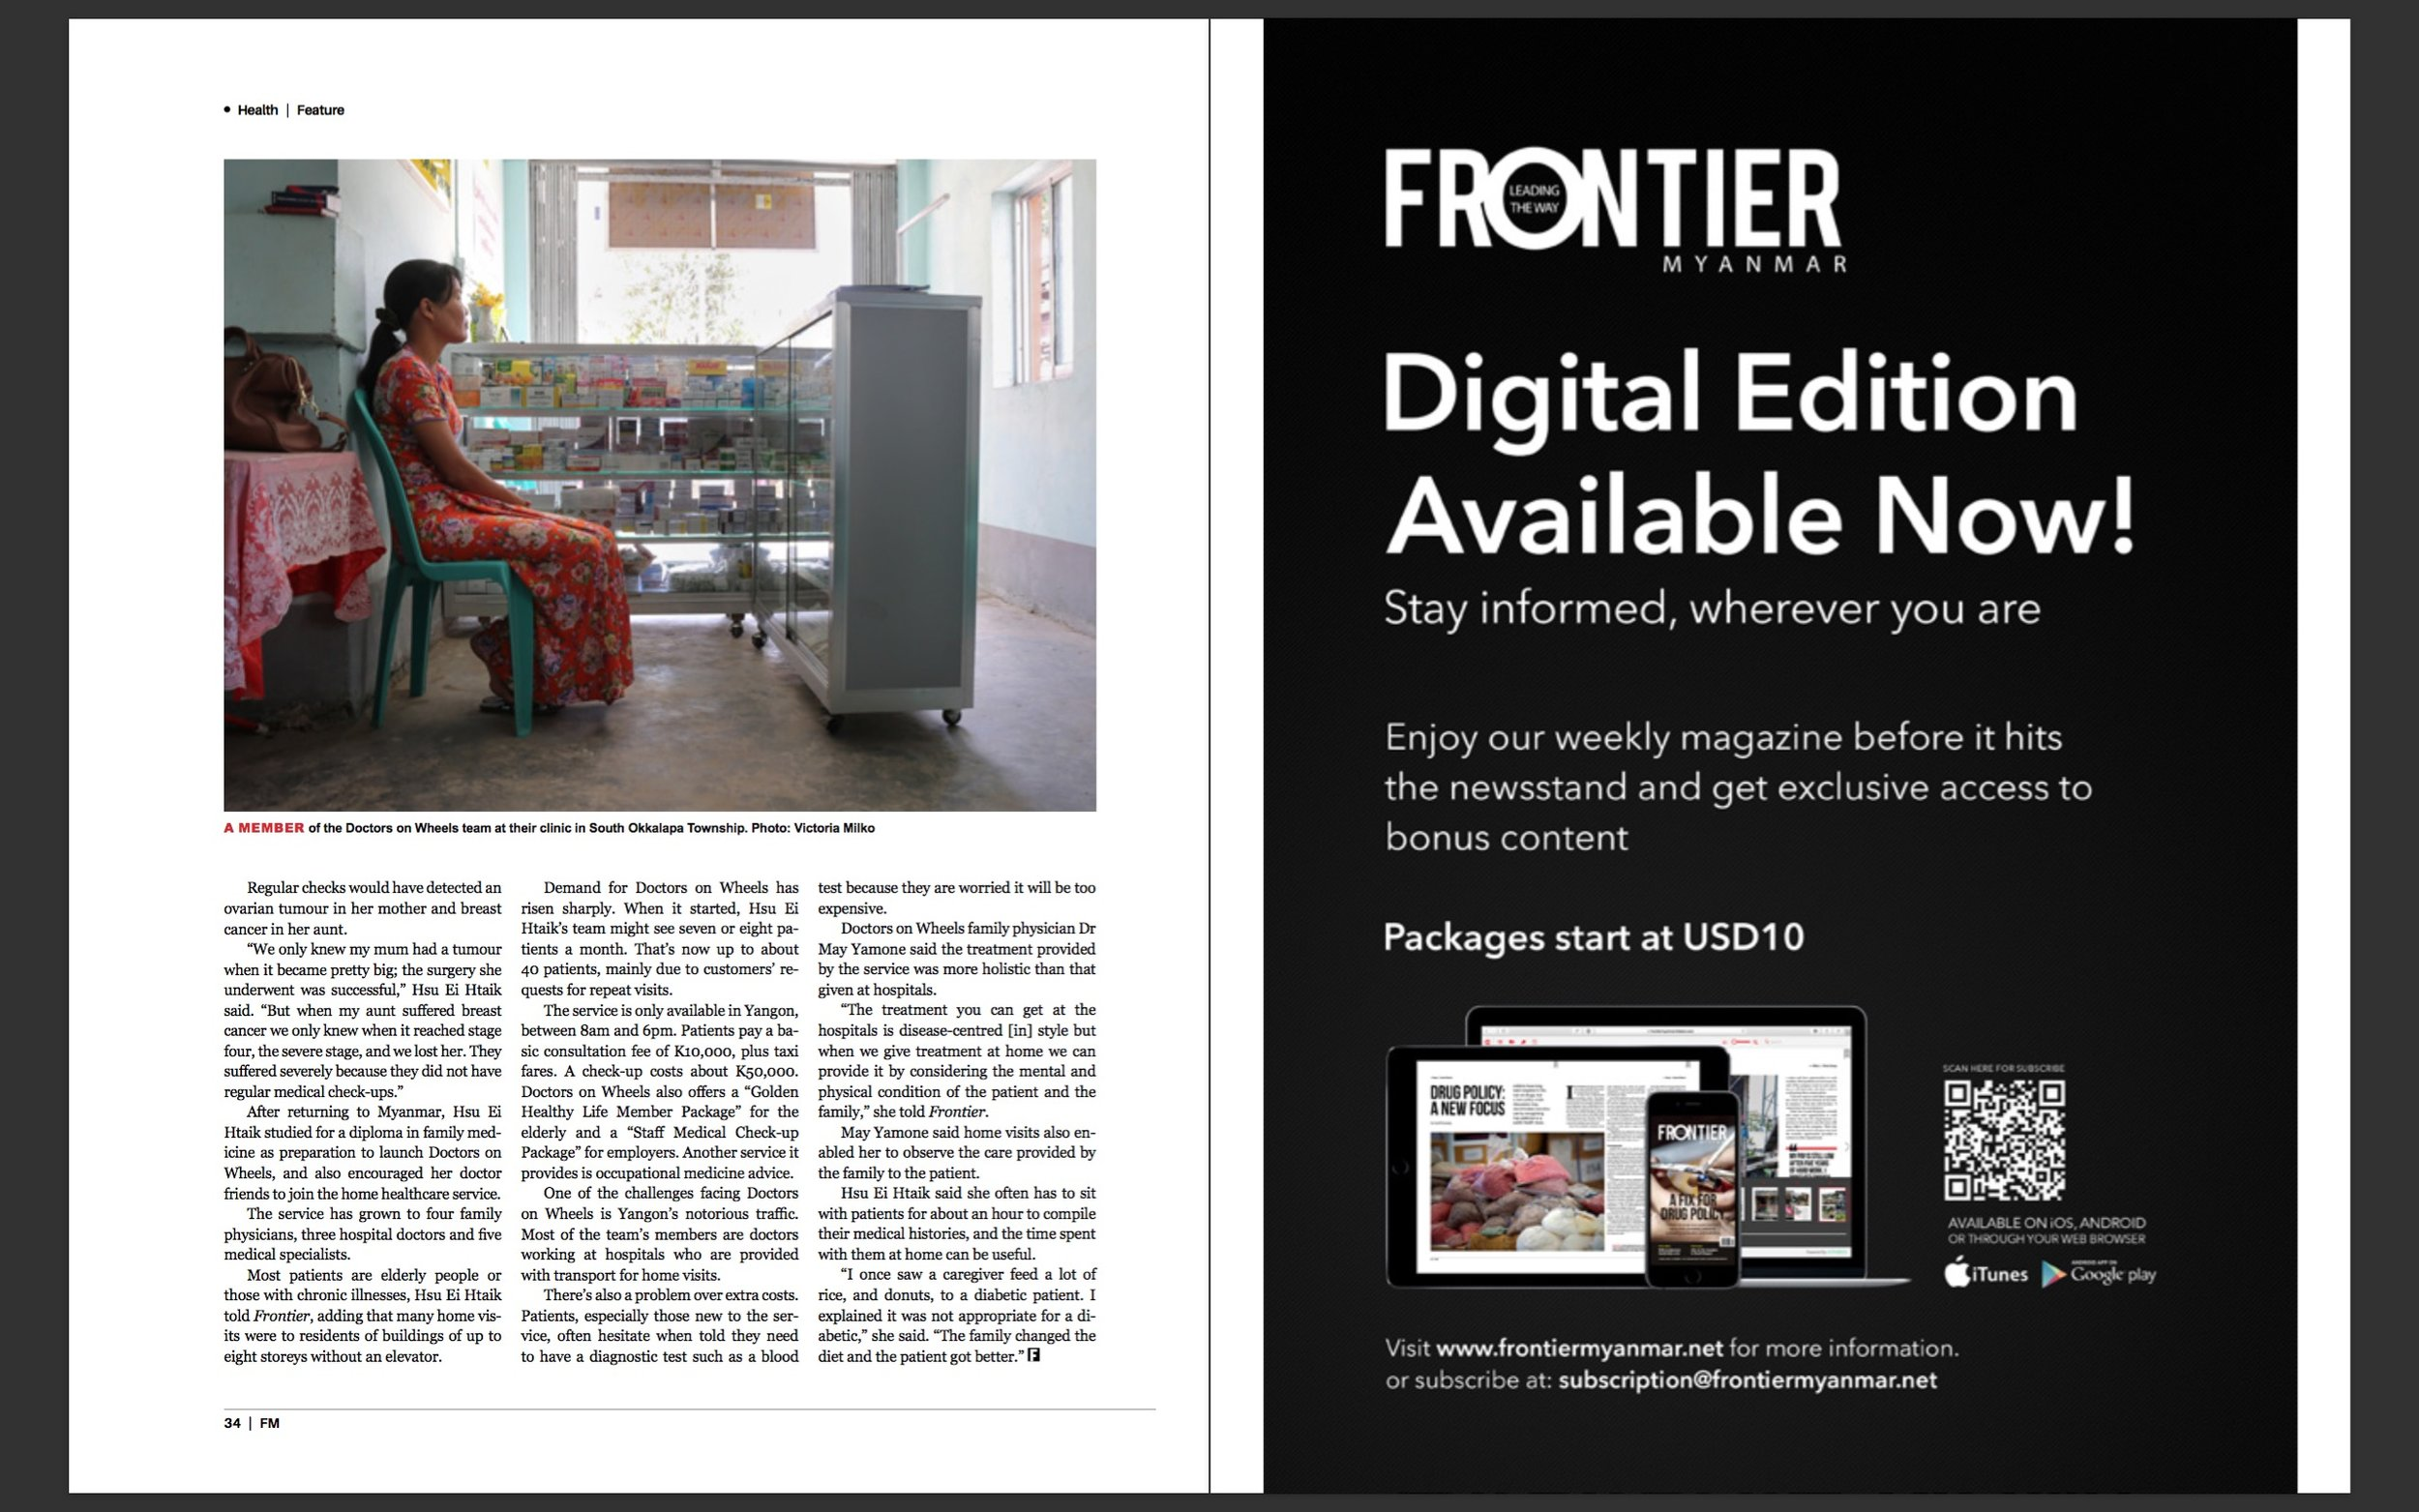 From Frontier Myanmar, Volume 2 Issue 39.